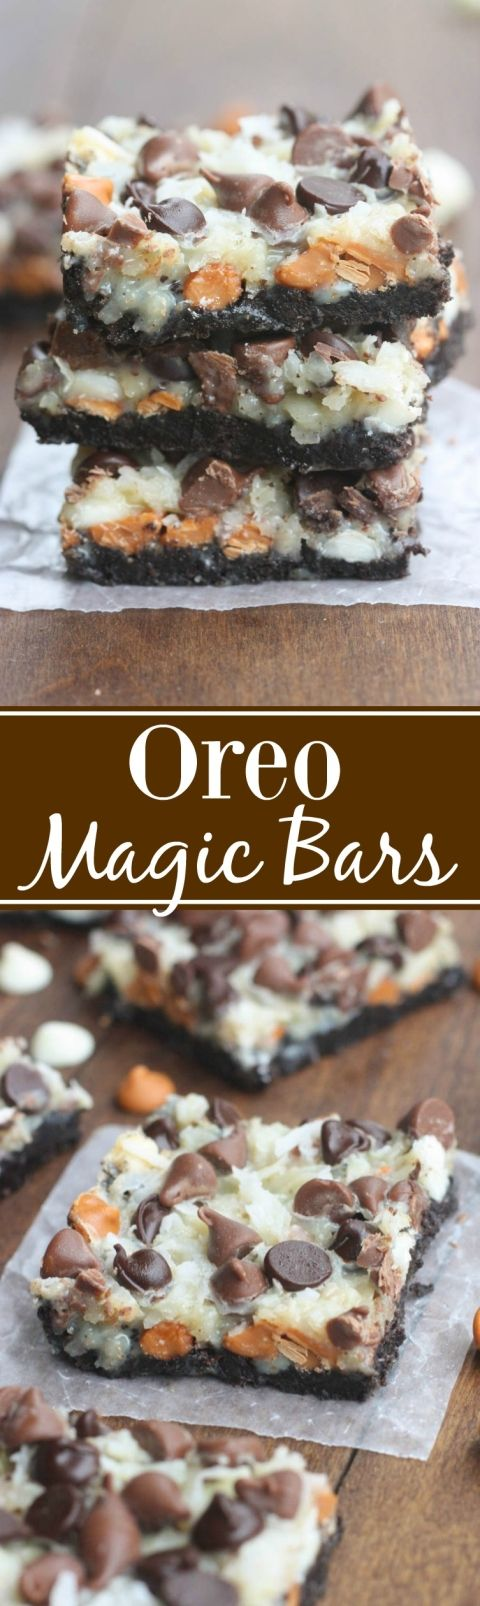 Oreo Magic Bars Dessert Recipe via Tastes Better From Scratch - Seven simple layers of Oreo chocolate bliss starting with an Oreo crust, three different types of chocolate chips, coconut and nuts. This is the EASIEST dessert, and always a party favorite.